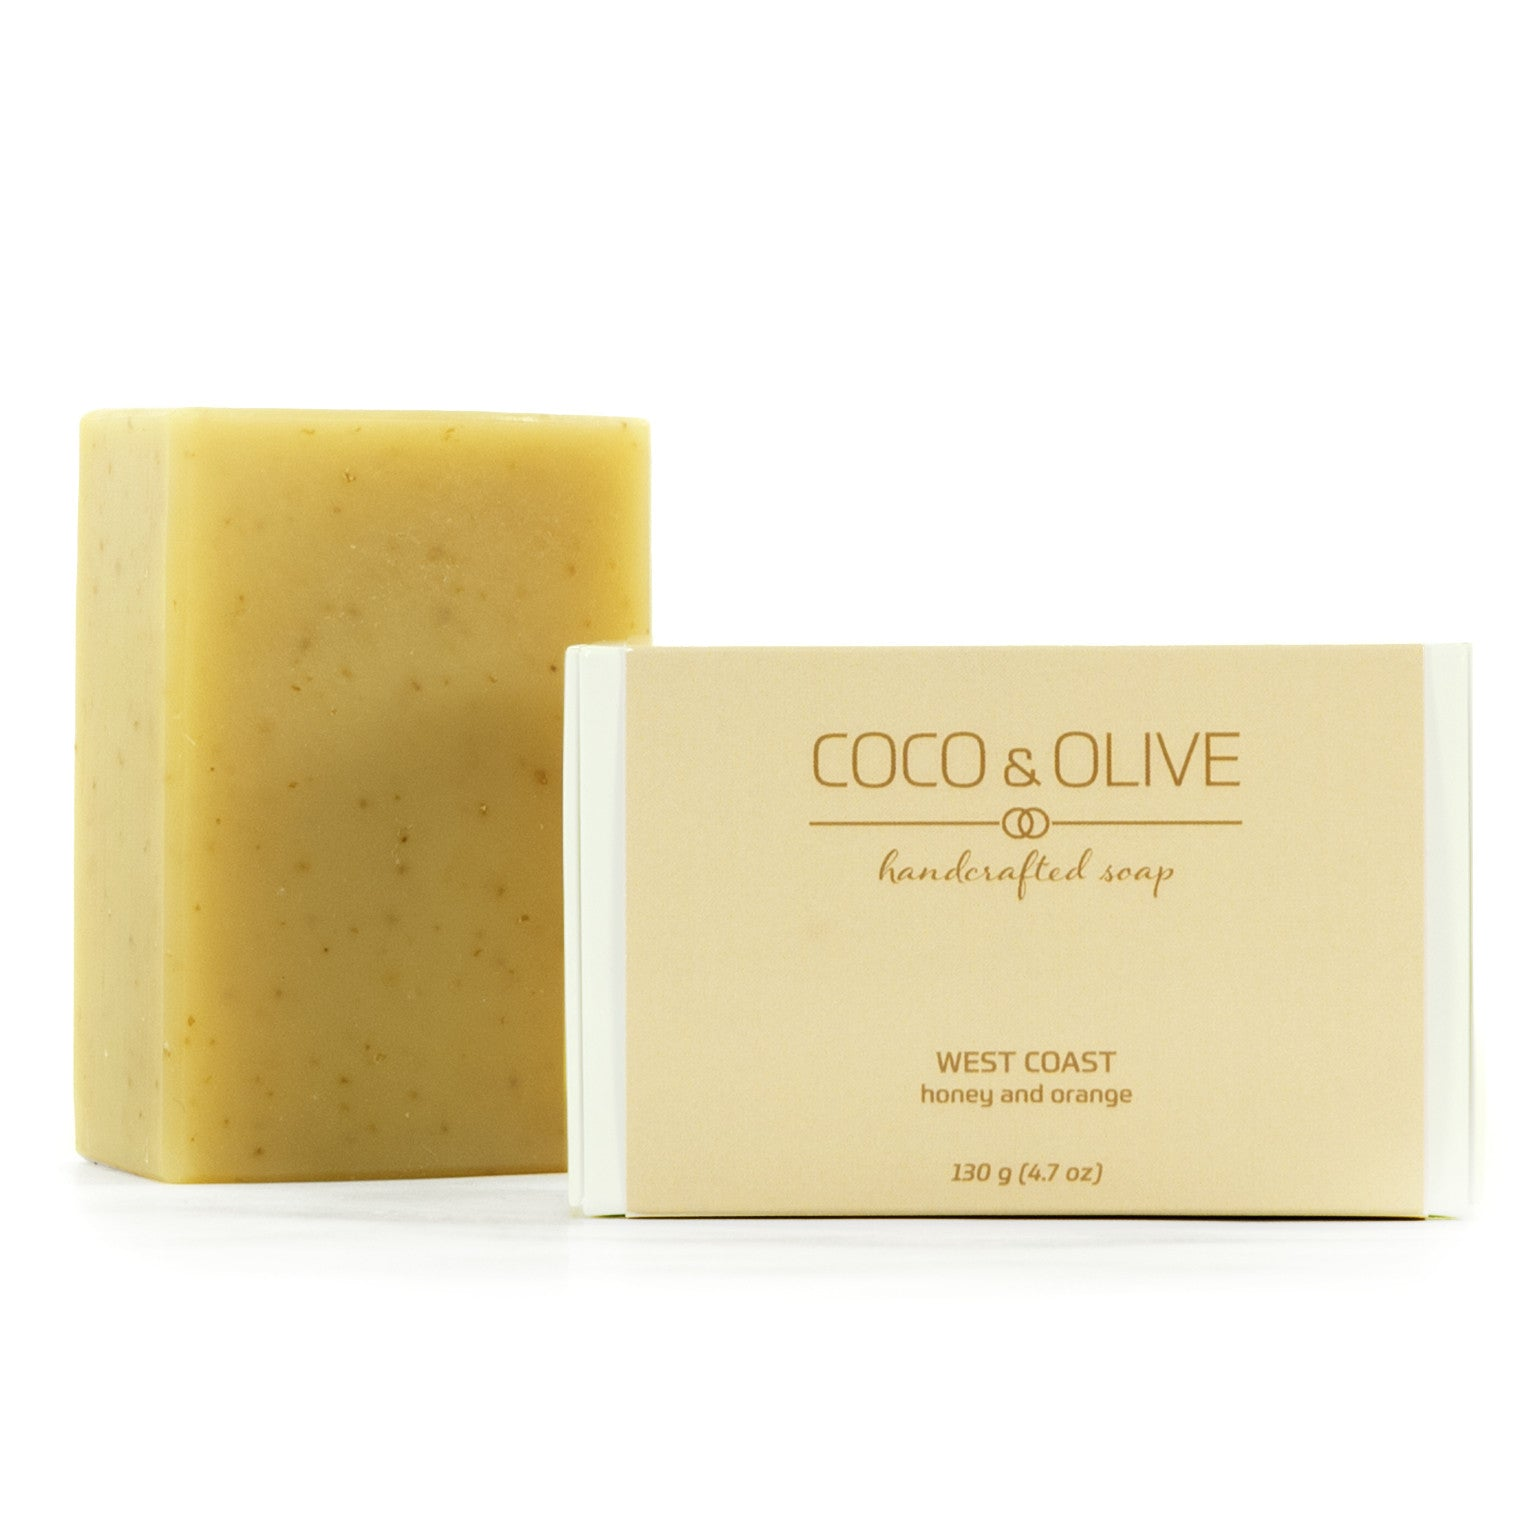 West Coast Coco & Olive handmade luxury soap. Containing organic British Columbia honey, reminiscent of west coast sunshine.